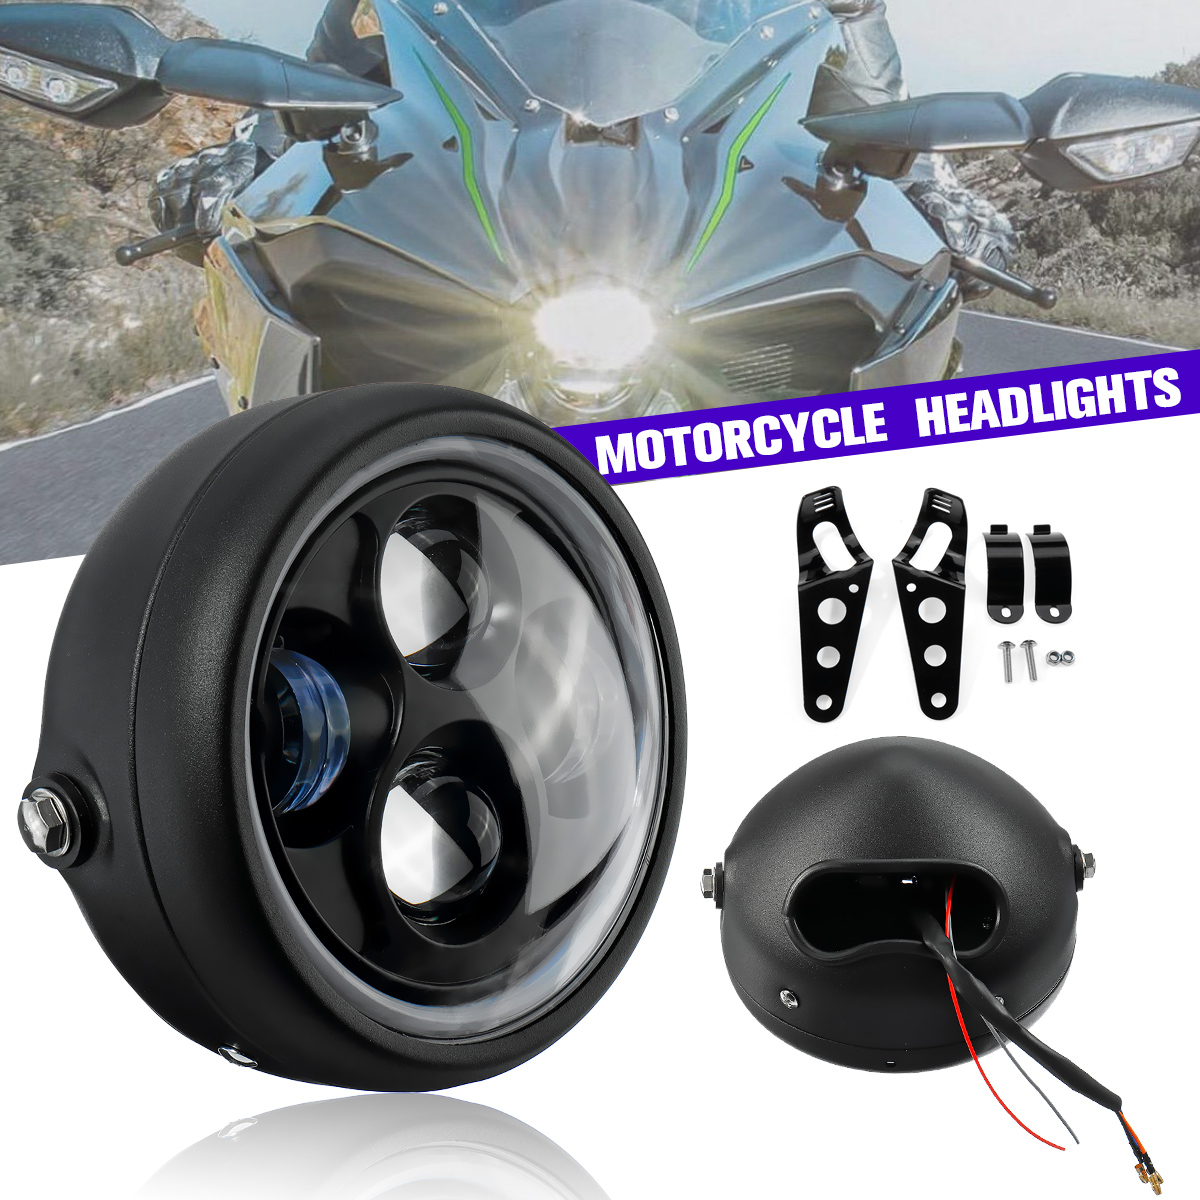 """7"""" Black LED Round Headlight Sealed Metal Headlamp Cold White Light DC 12V Motorcycle Headlight Lamp With Brackets For Harley"""